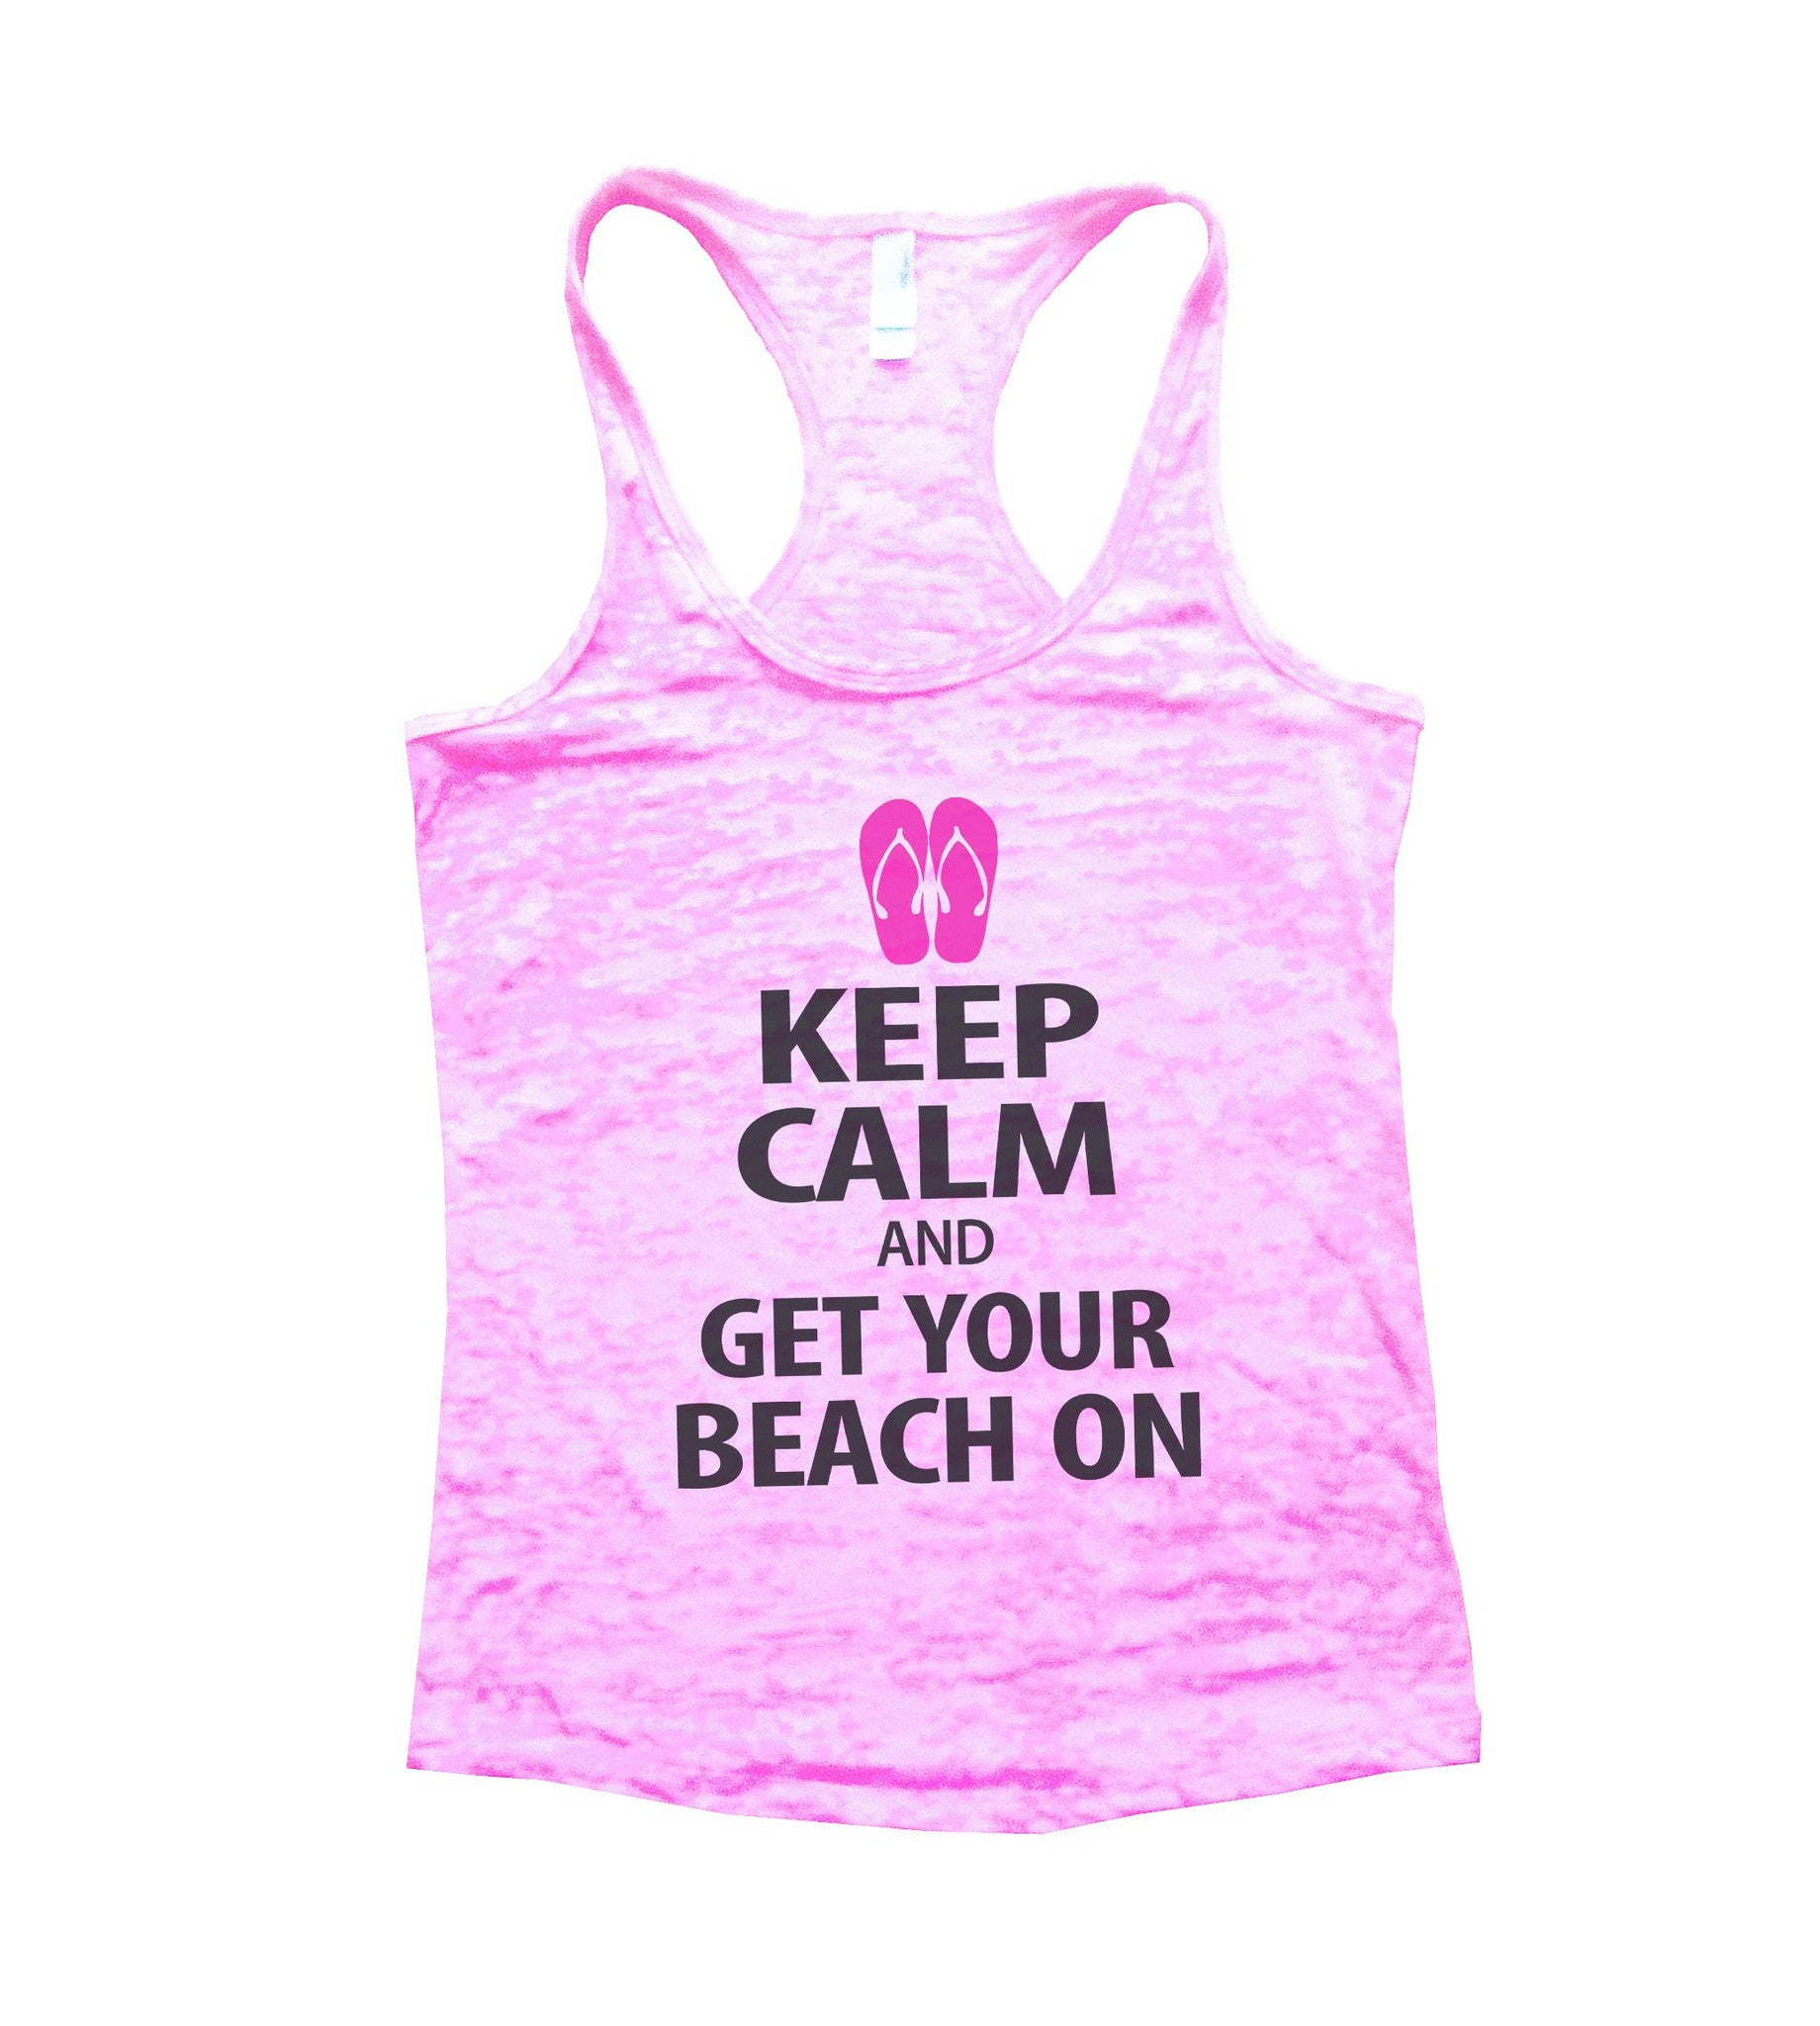 Keep Calm And Get Your Beach On Burnout Tank Top By BurnoutTankTops.com - 550 - Funny Shirts Tank Tops Burnouts and Triblends  - 1